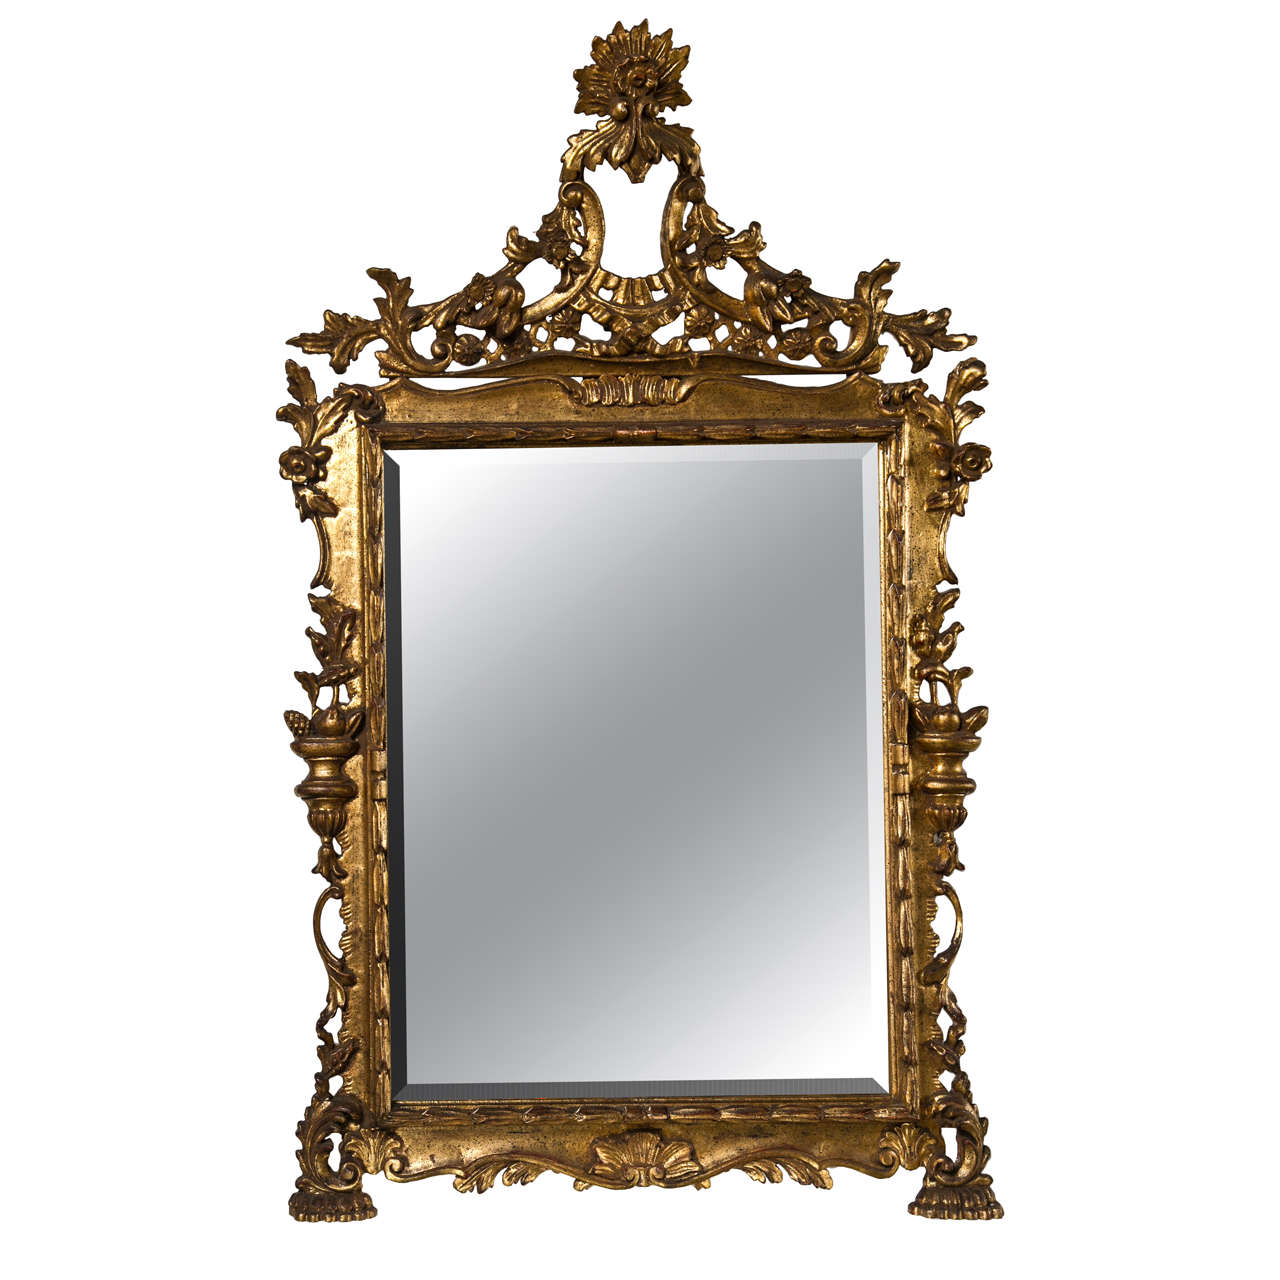 French belle epoque style mirror for sale at 1stdibs for Mirrors for sale